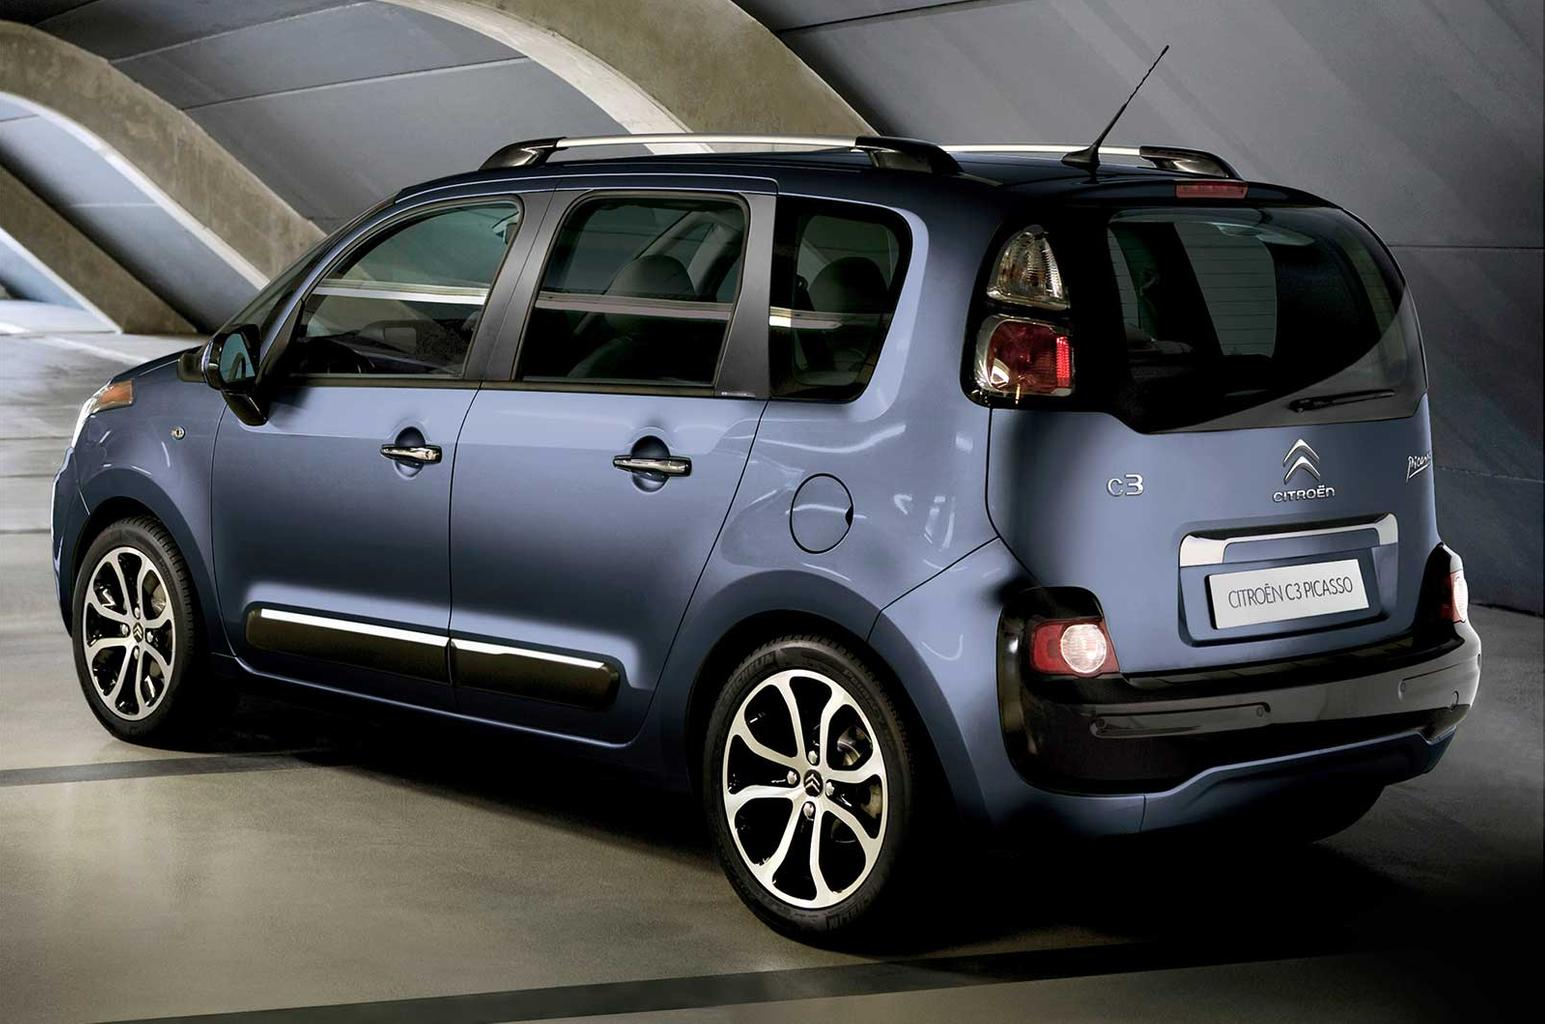 Used car of the week - Citroen C3 Picasso